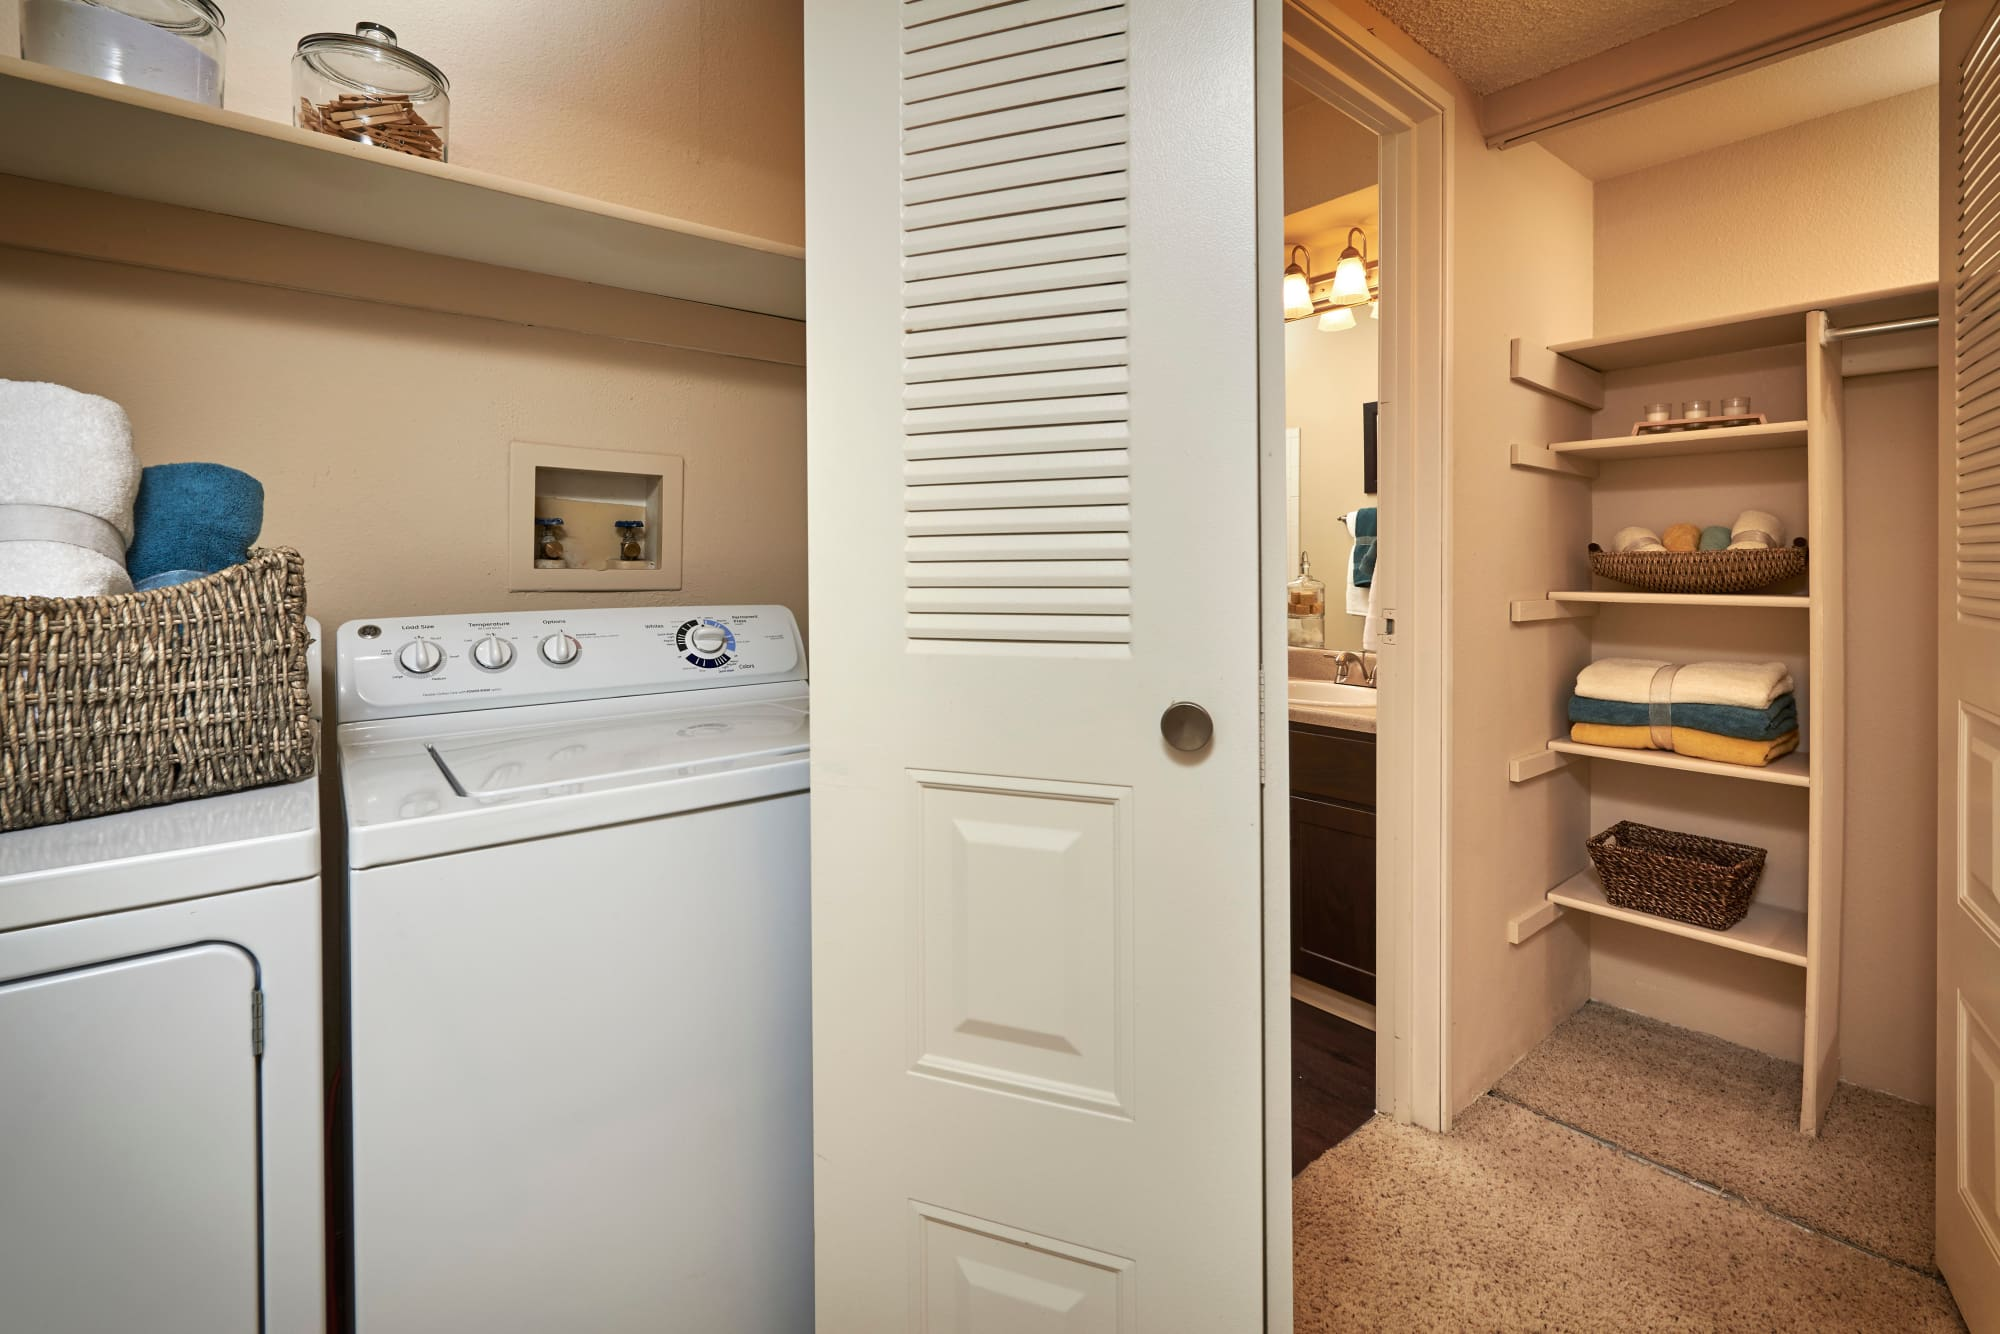 Washer And Dryer Machine at Alton Green Apartments in Denver, CO